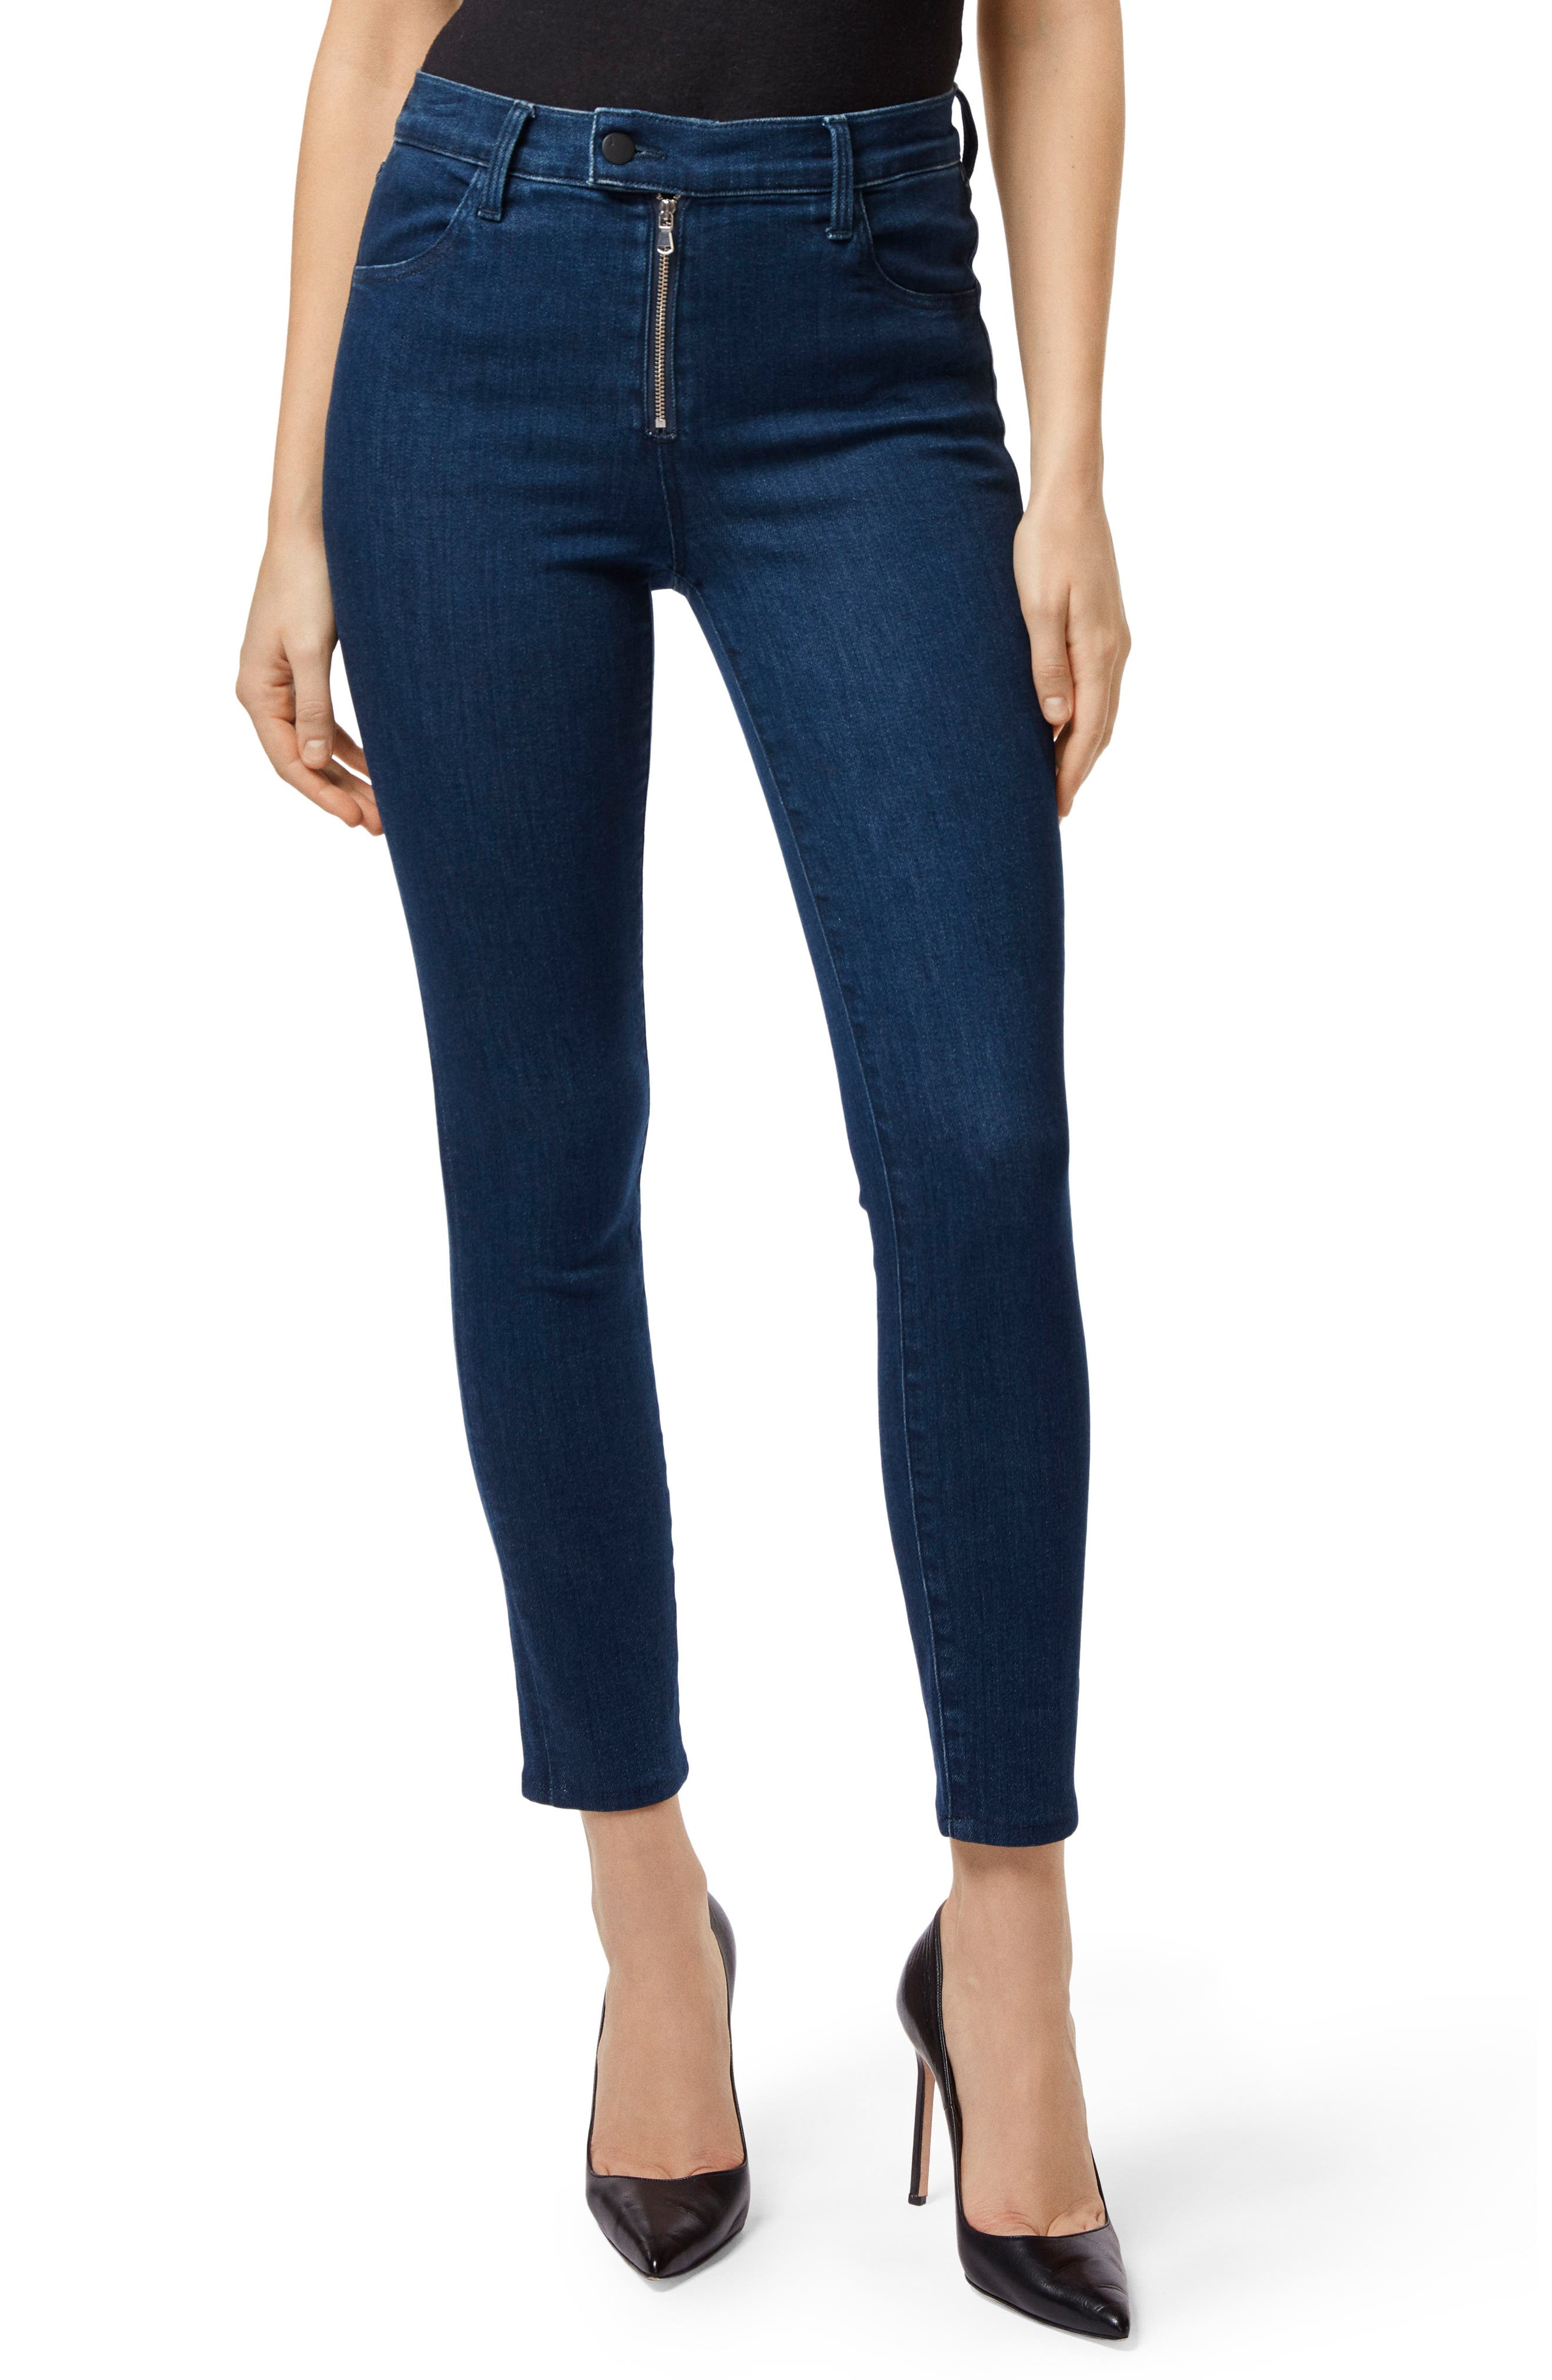 Alana Exposed Zip High Waist Ankle Skinny Jeans,                             Main thumbnail 1, color,                             439